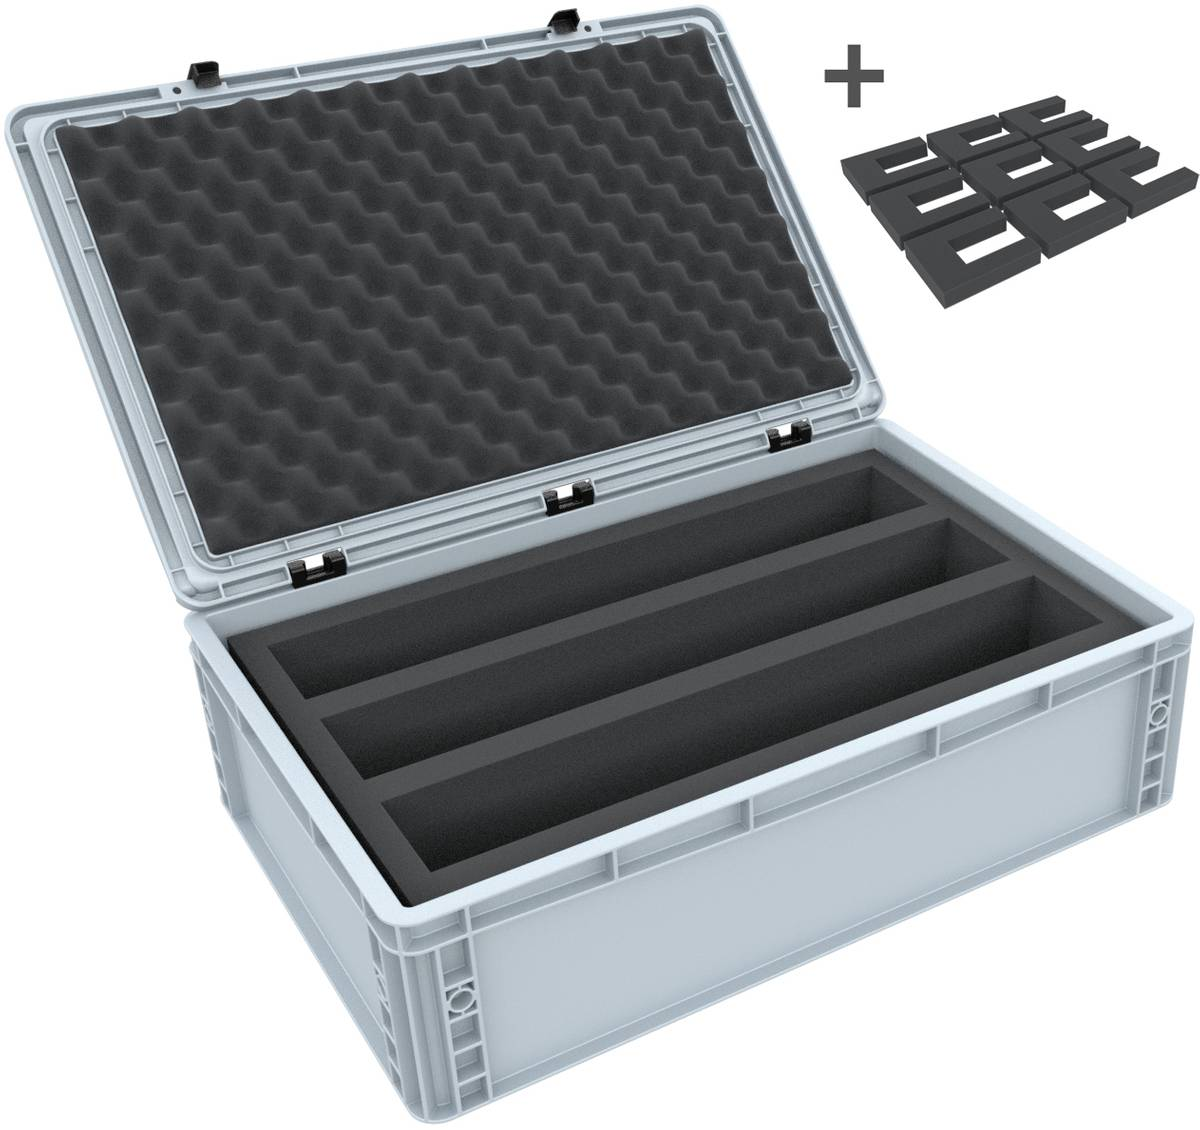 Euro Box / Container Case for model railway locomotives, wagons and vehicles - 3 slots for 0 Gauge - vertical